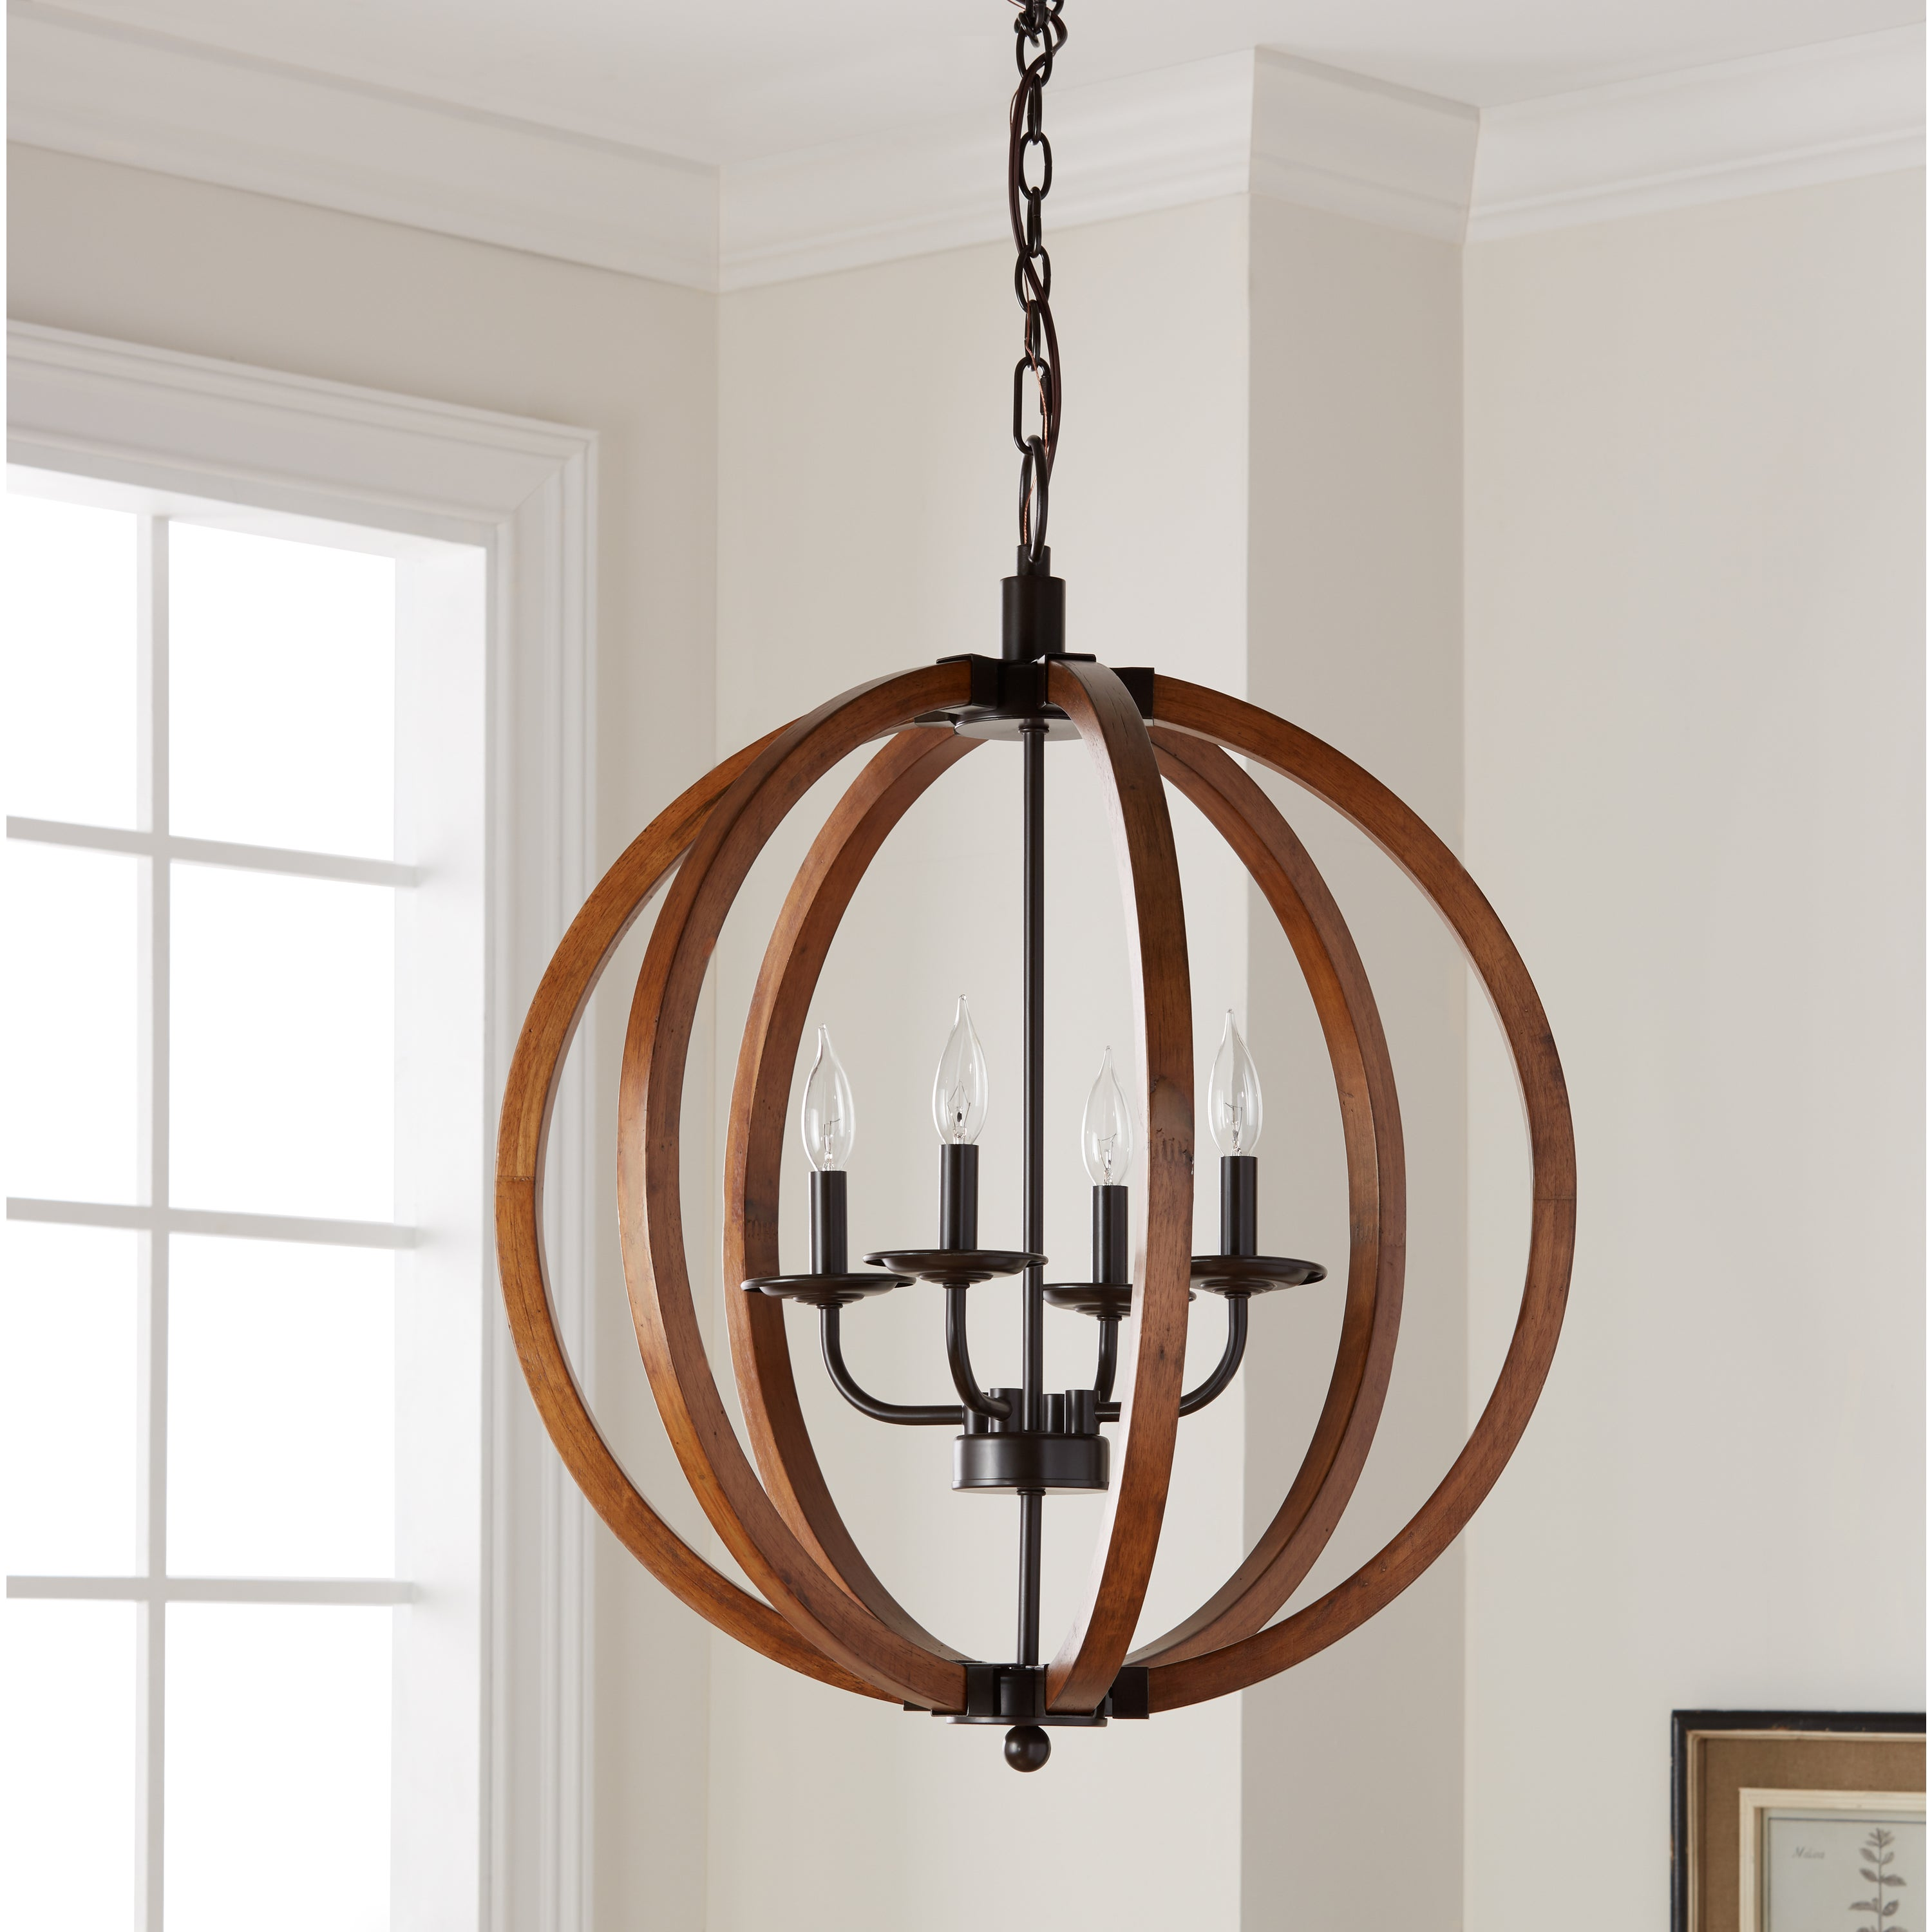 Farmhouse lighting ceiling fans find great deals shopping at overstock